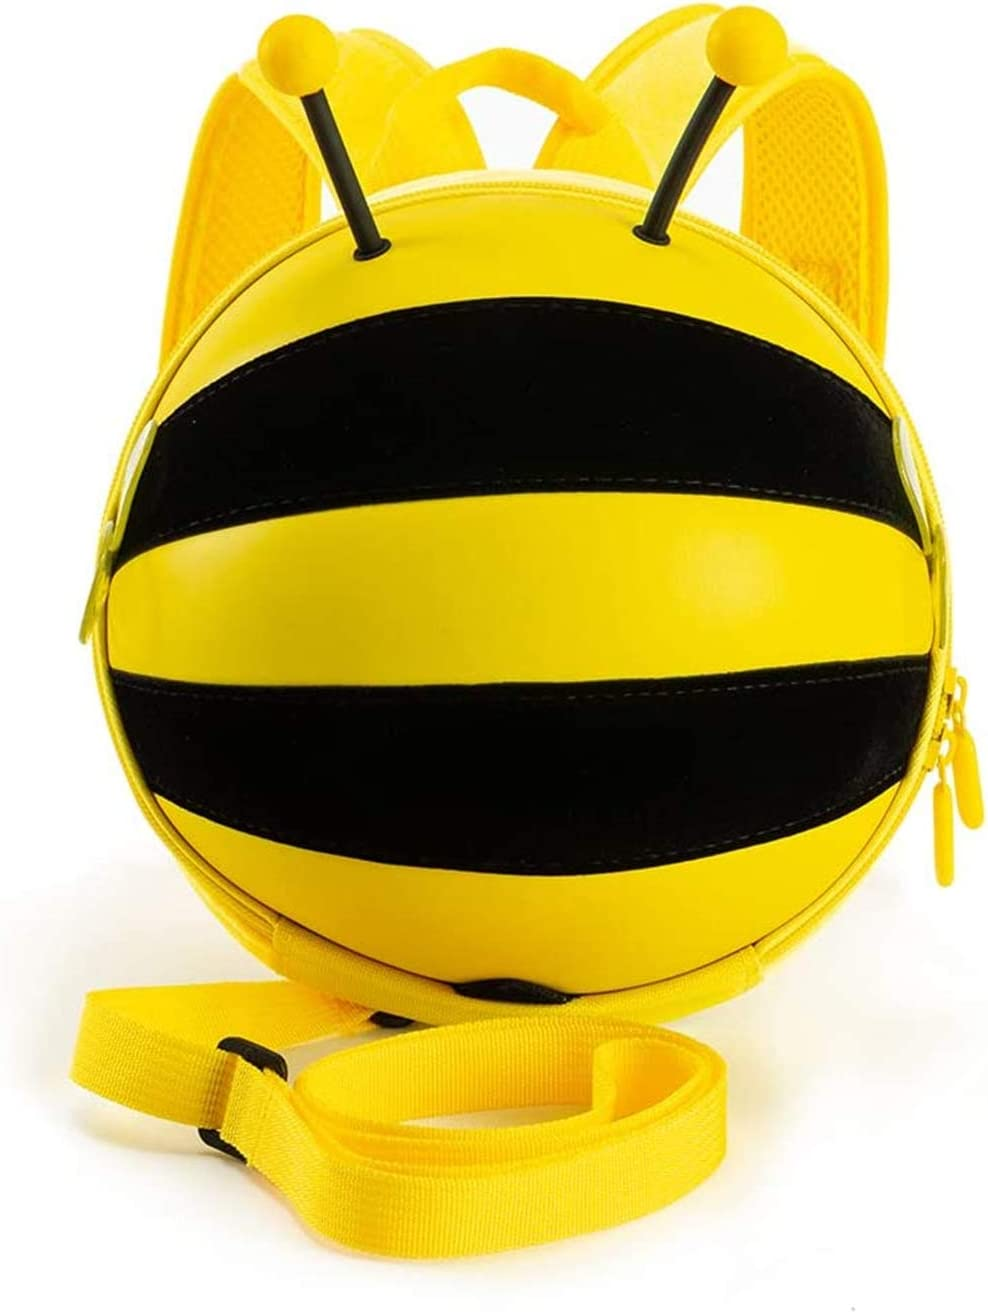 Baby Backpack with Leash for Toddler,Small Bee Backpack for kids,Anti Lost Bag